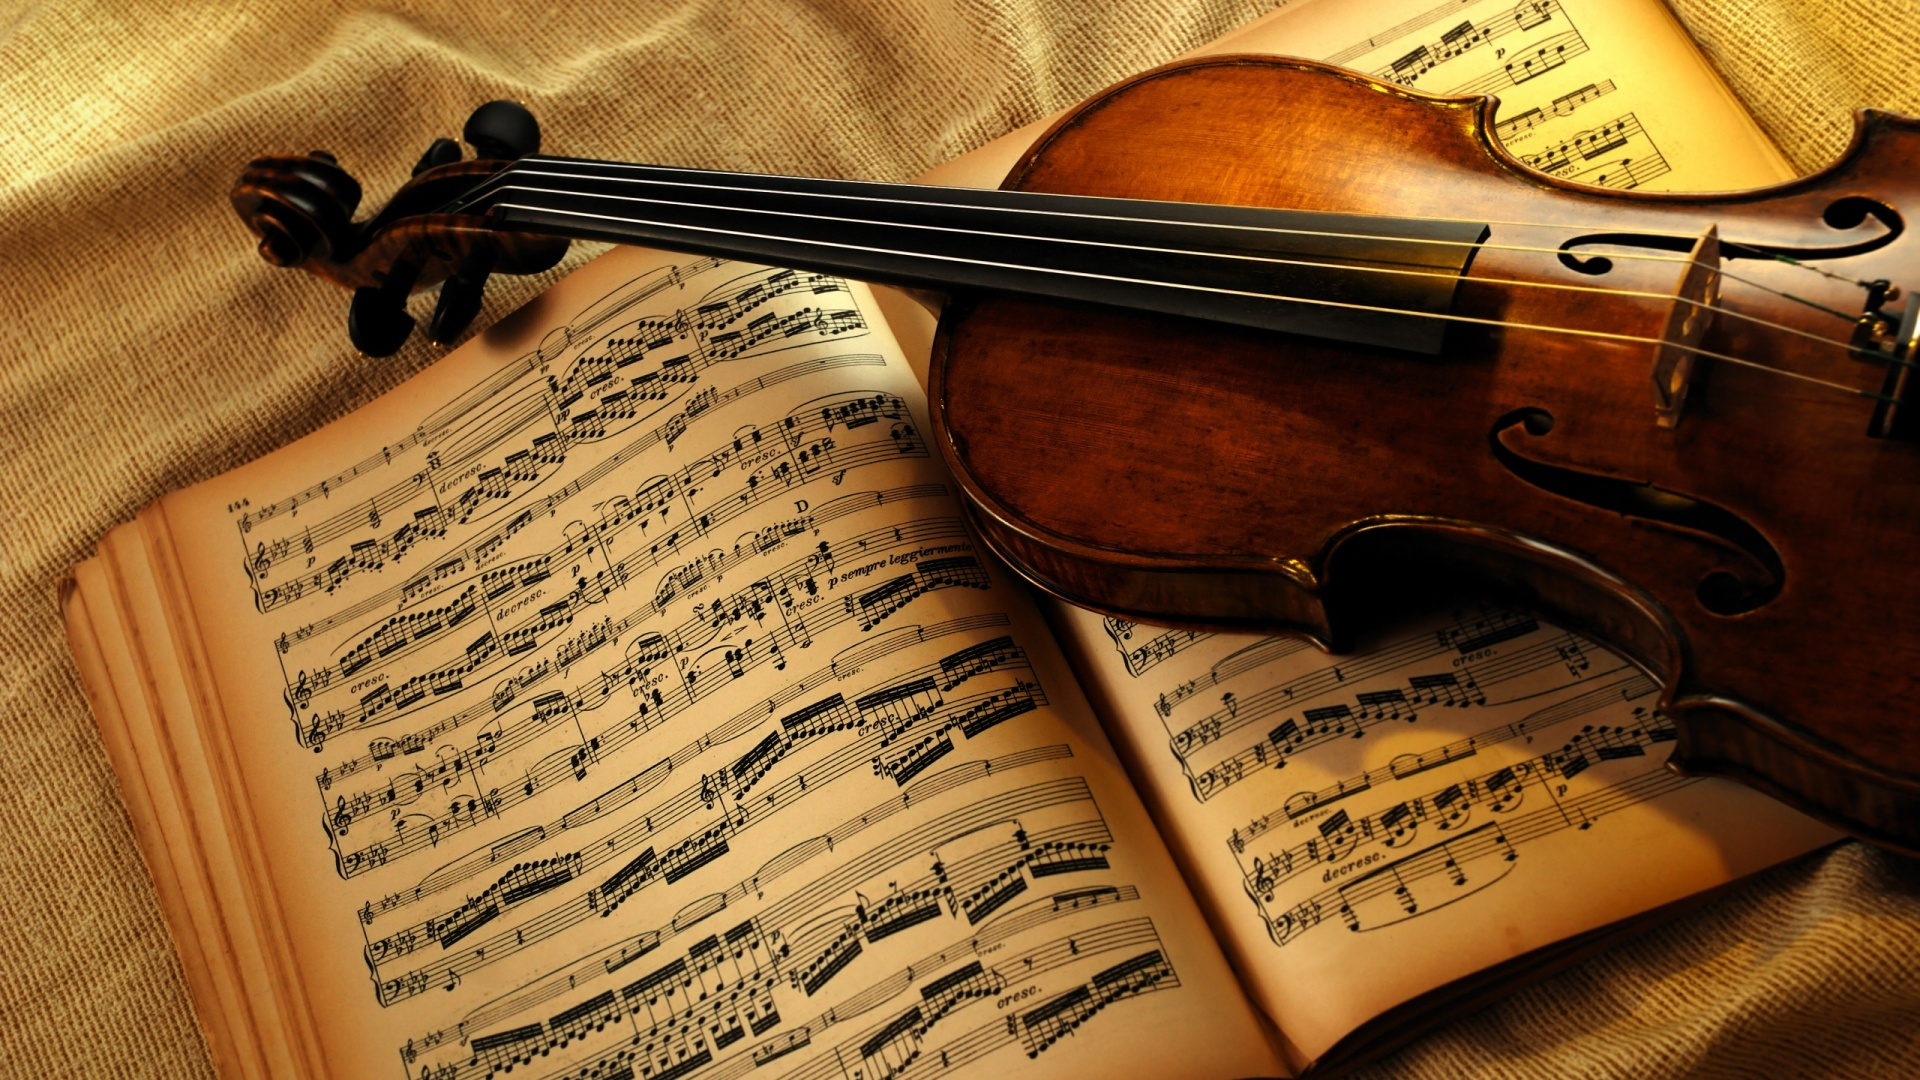 violin-and-notes-wallpapers_17591_1920x1080